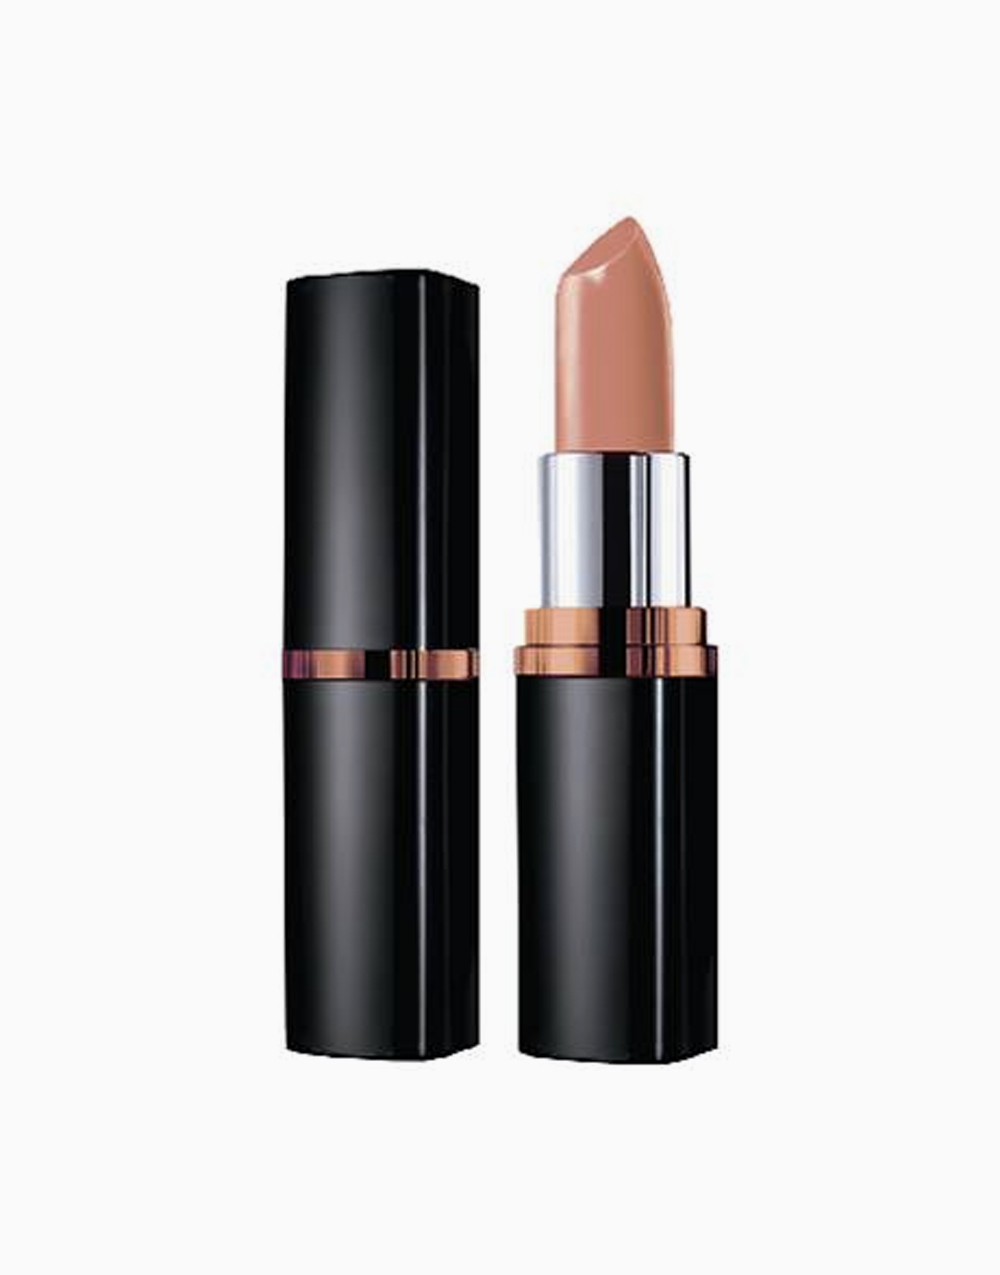 ColorSensational Vivid Creamy Matte Lipstick by Maybelline | Barely Nude